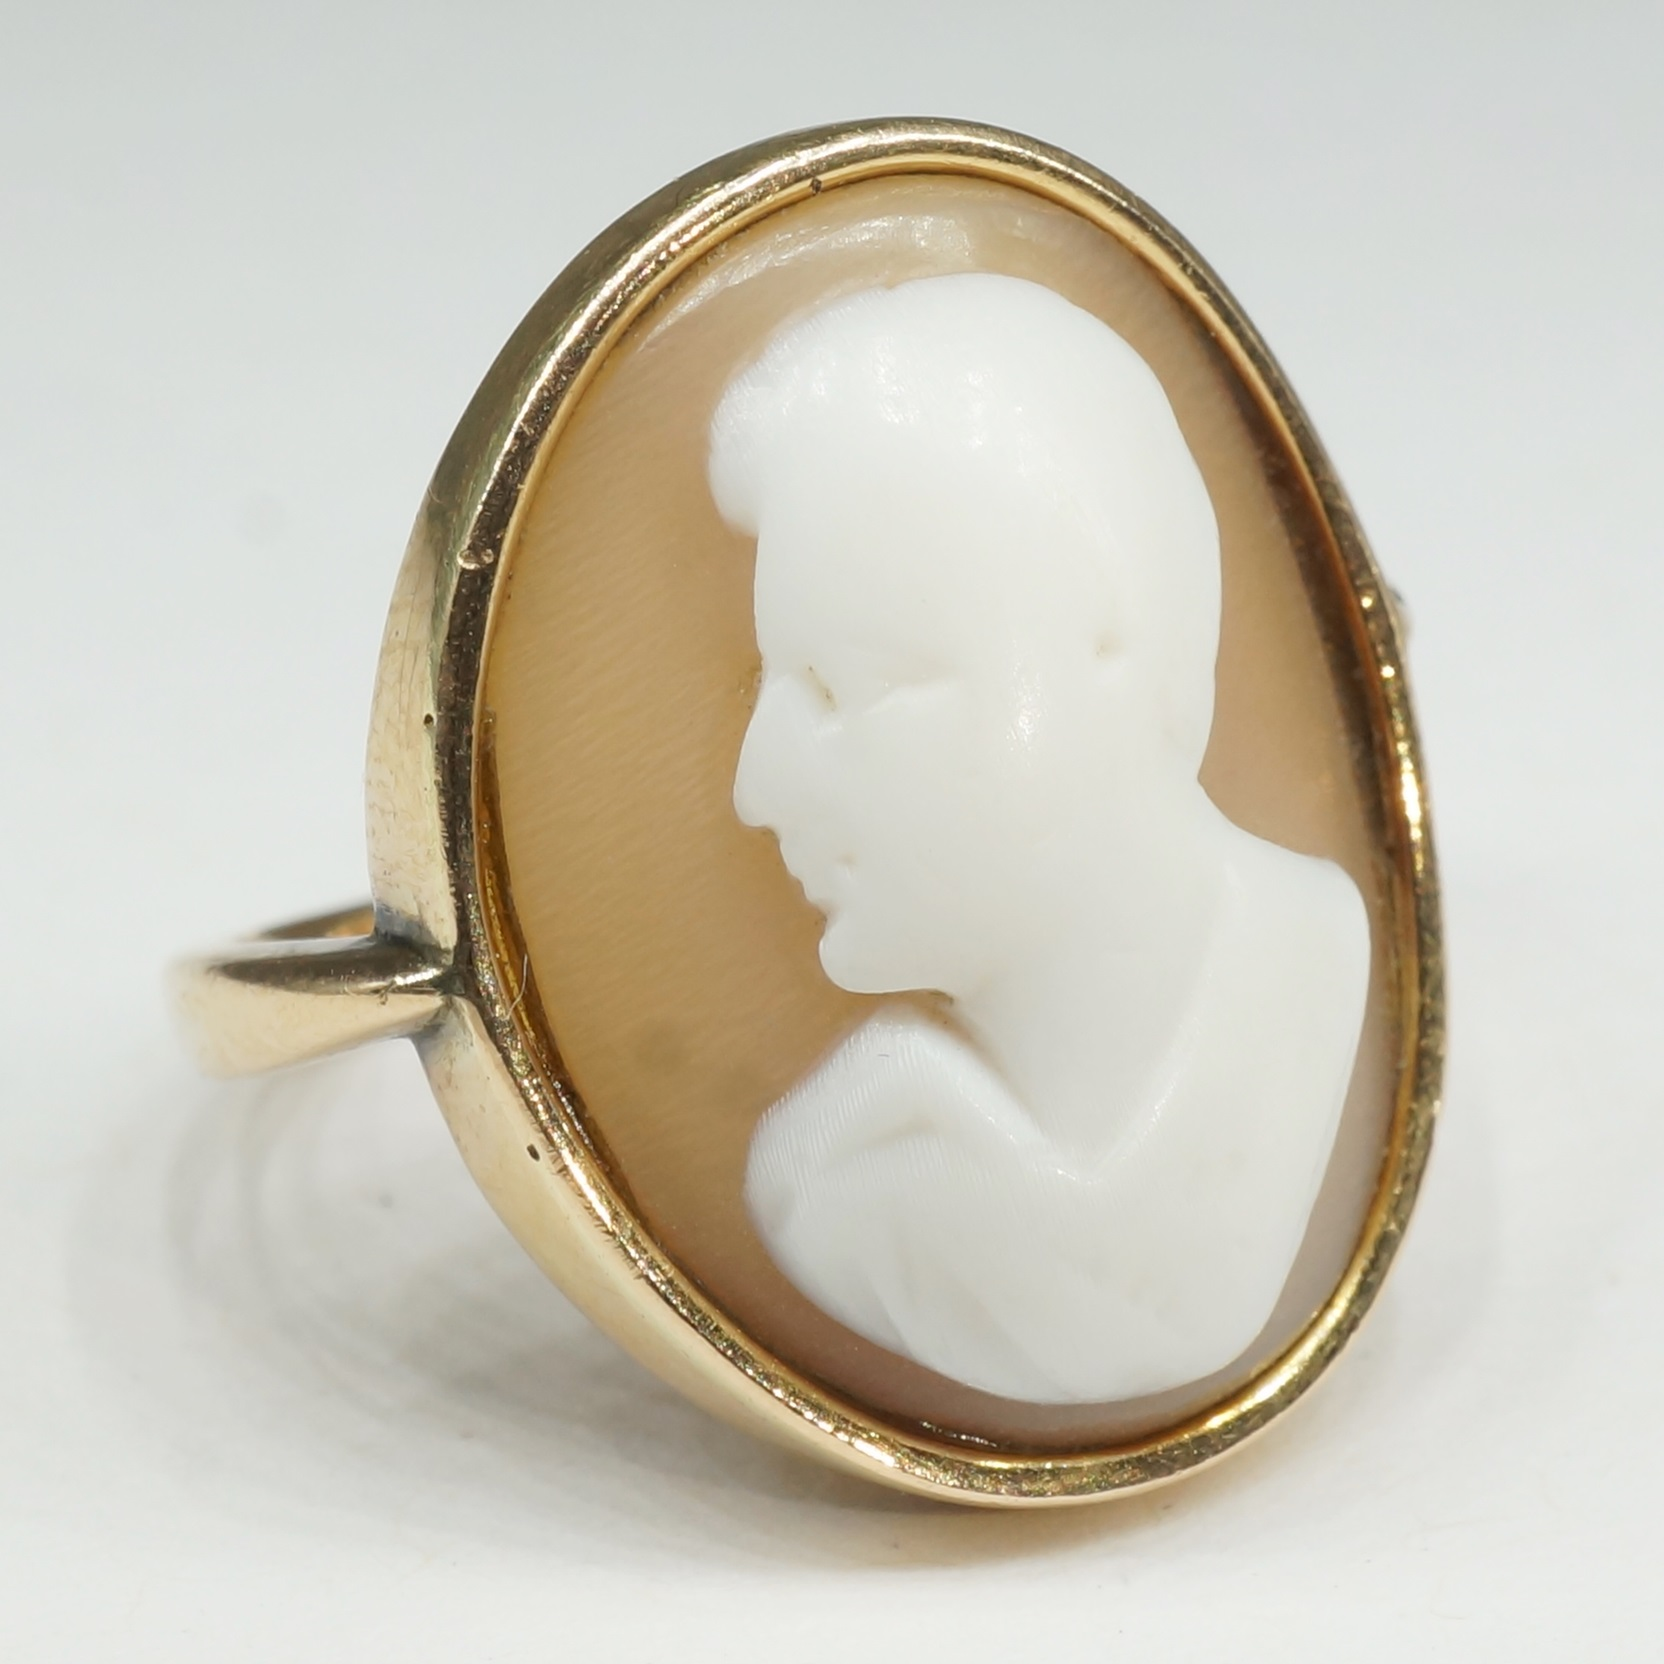 'Antique 18ct Yellow Gold Cameo Ring with Male Portrait'